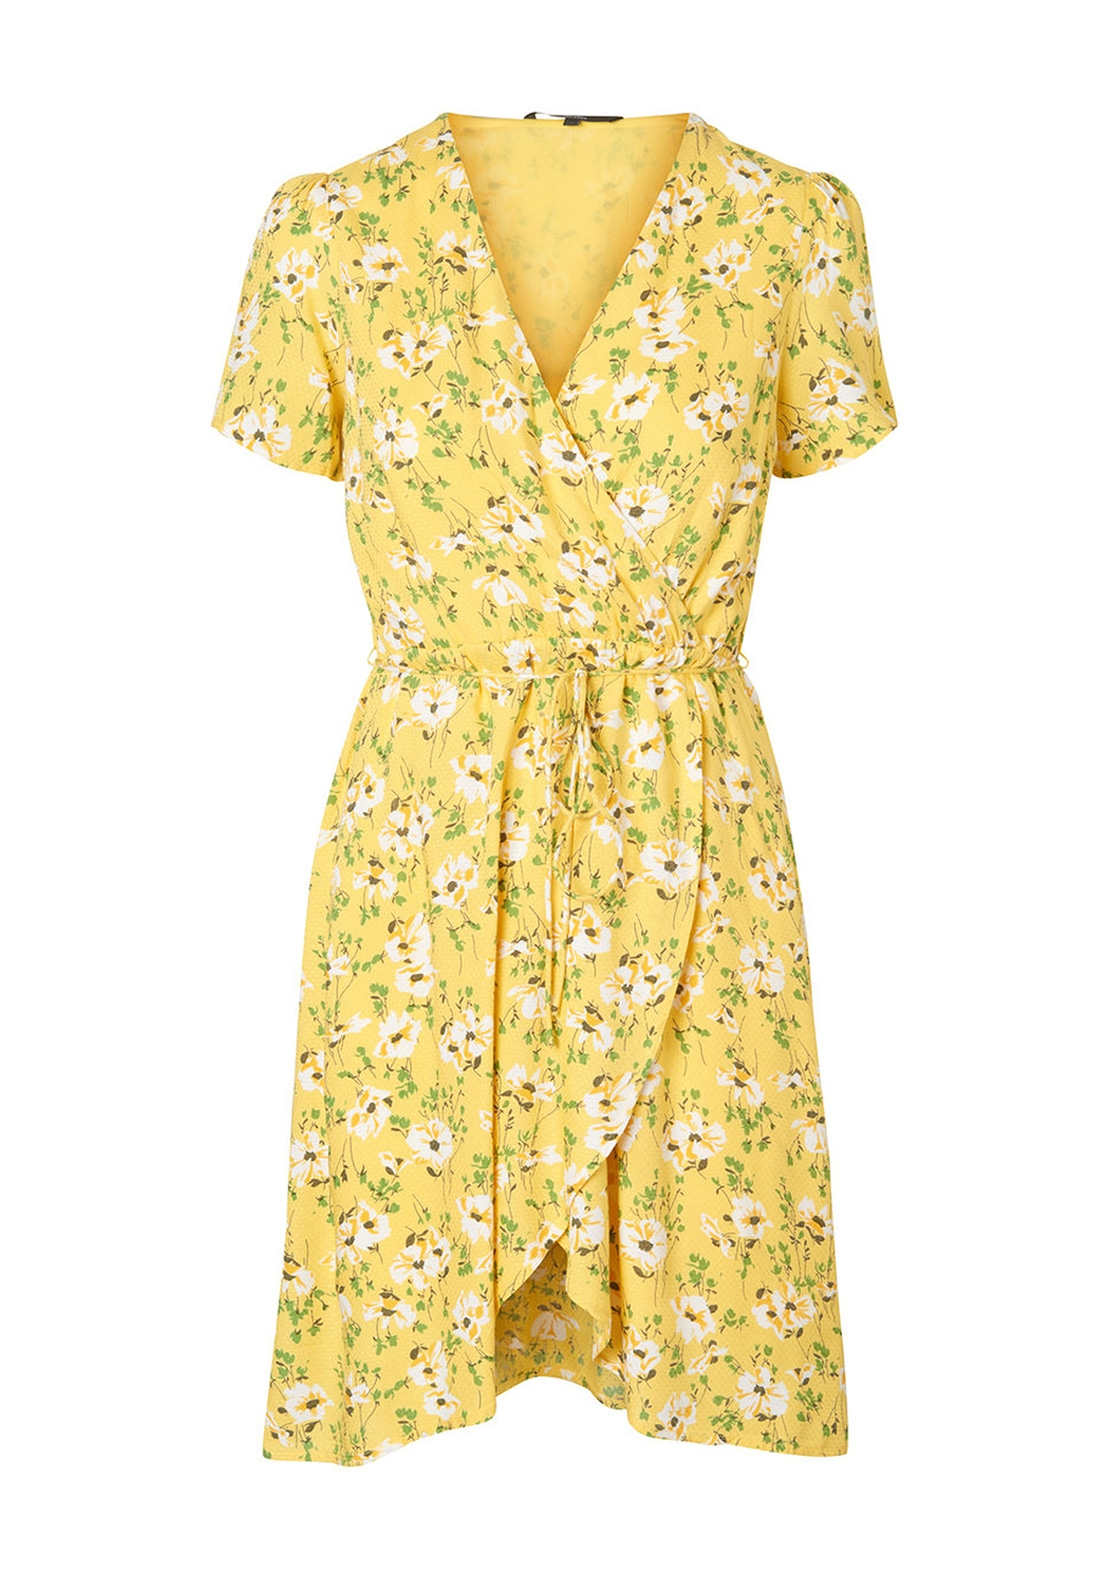 Vero Moda Polly Floral Midi Dress, Yellow